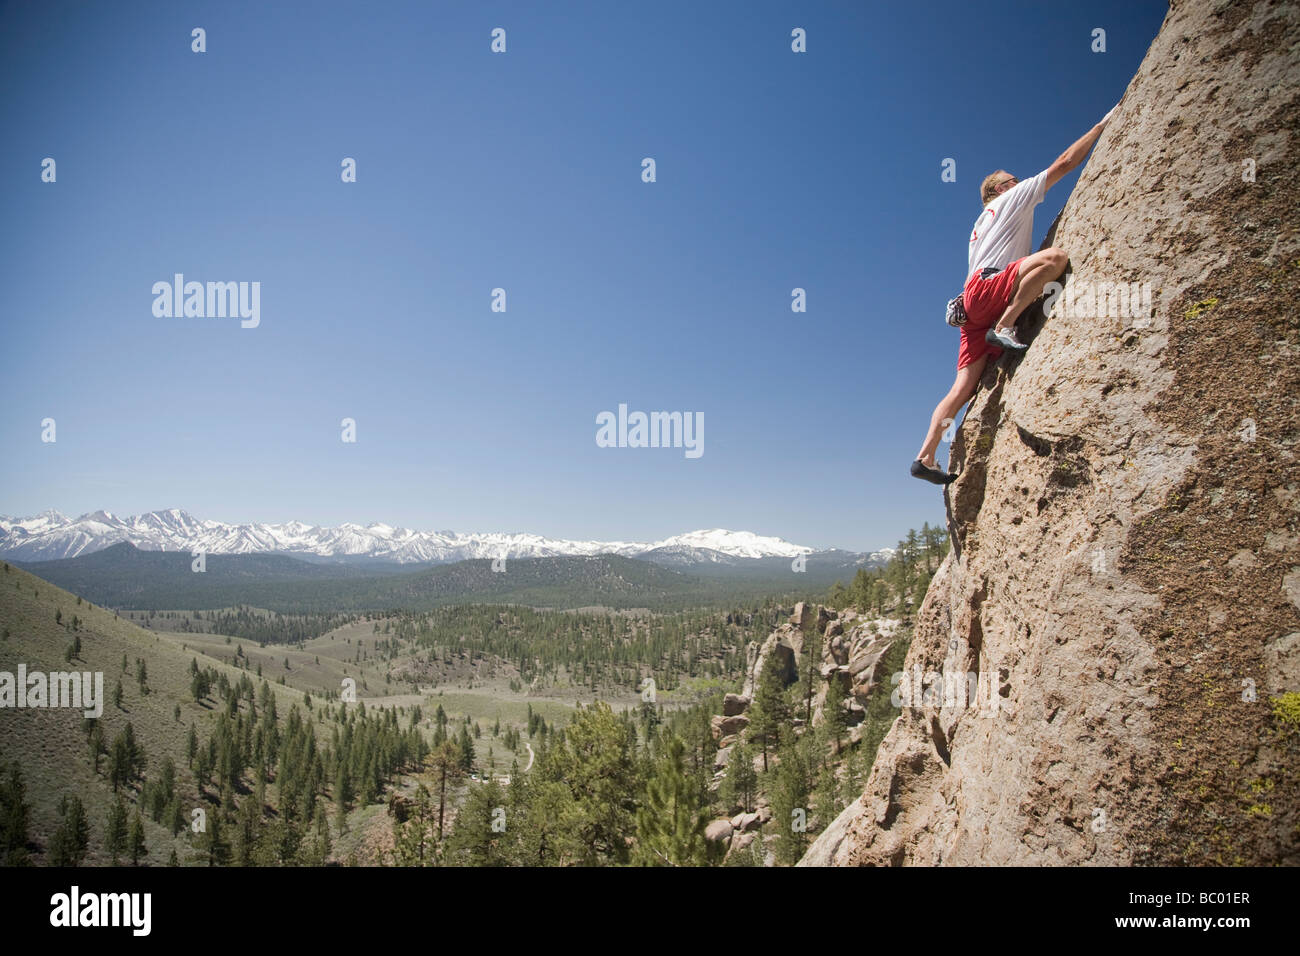 A man solo climbing in the Sierras. - Stock Image